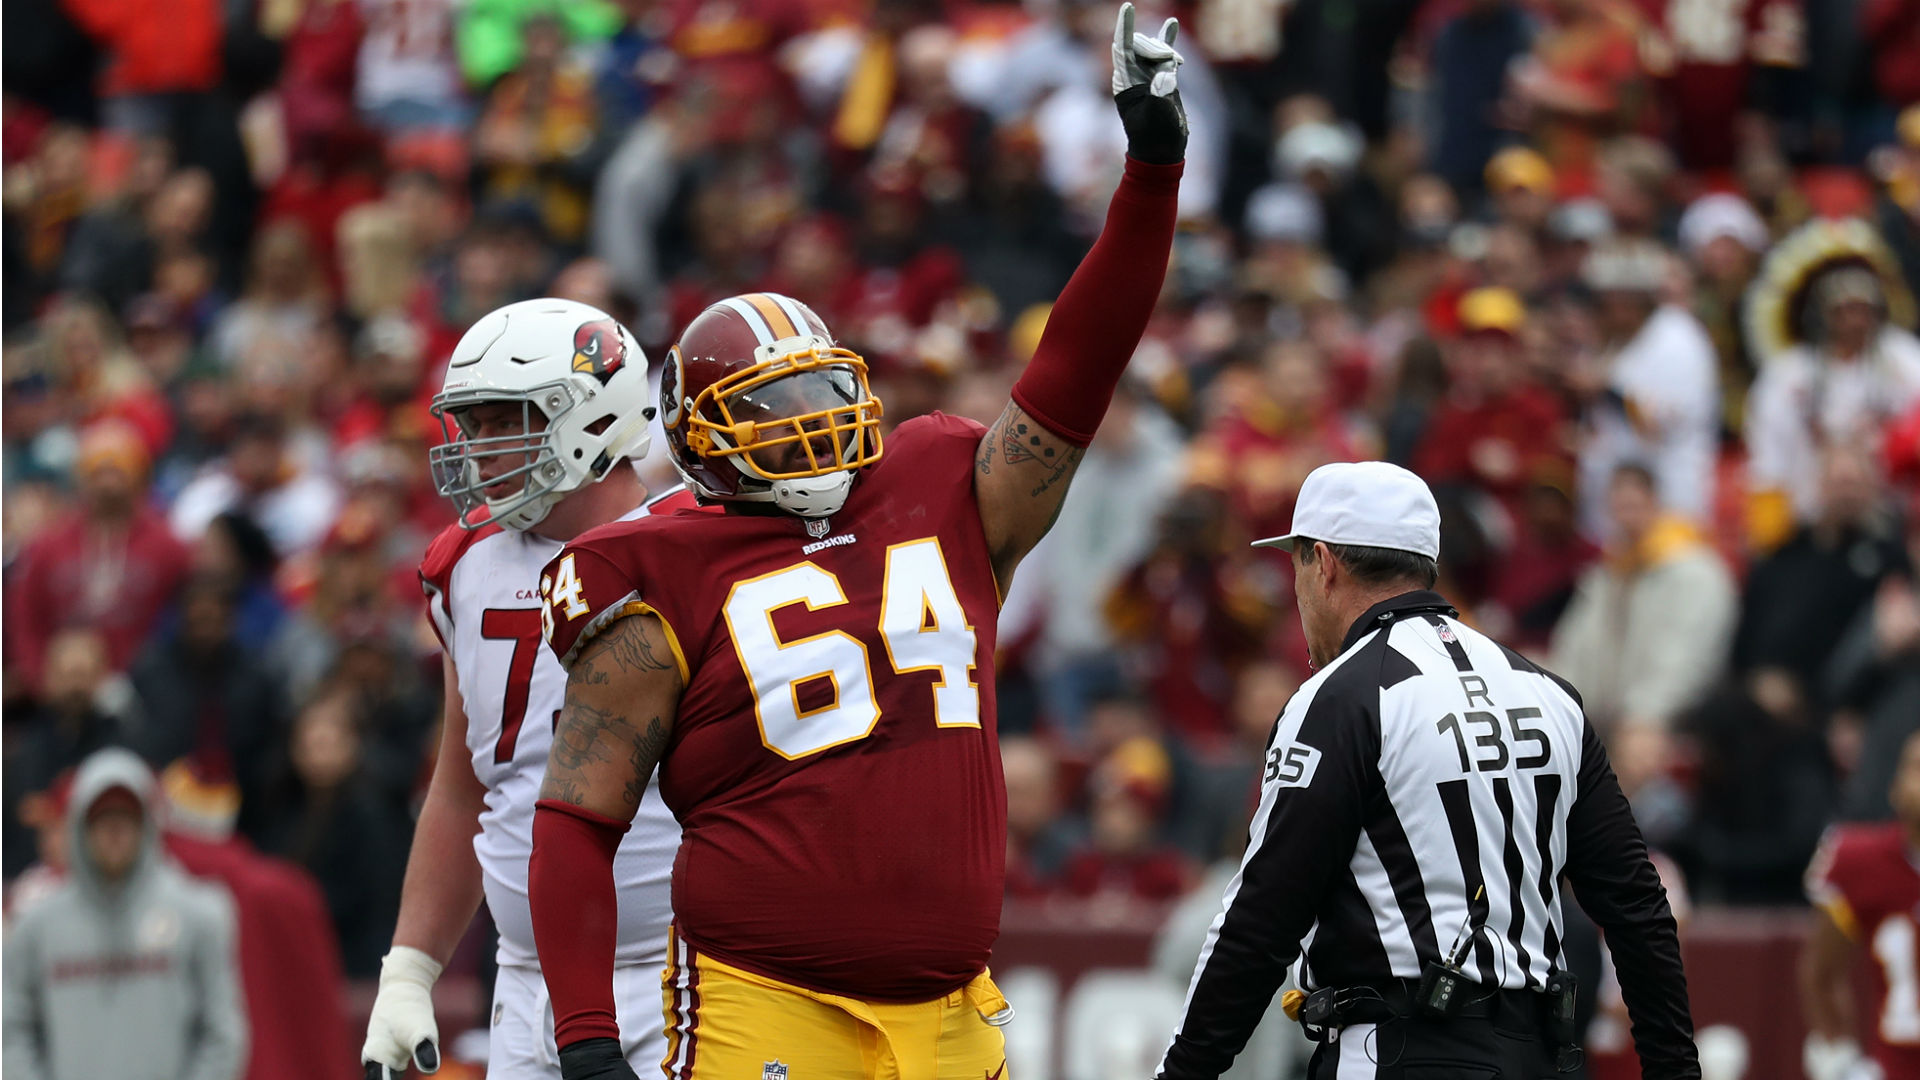 Former Redskin A.J. Francis blasts team on Instagram, says logo is 'racist'